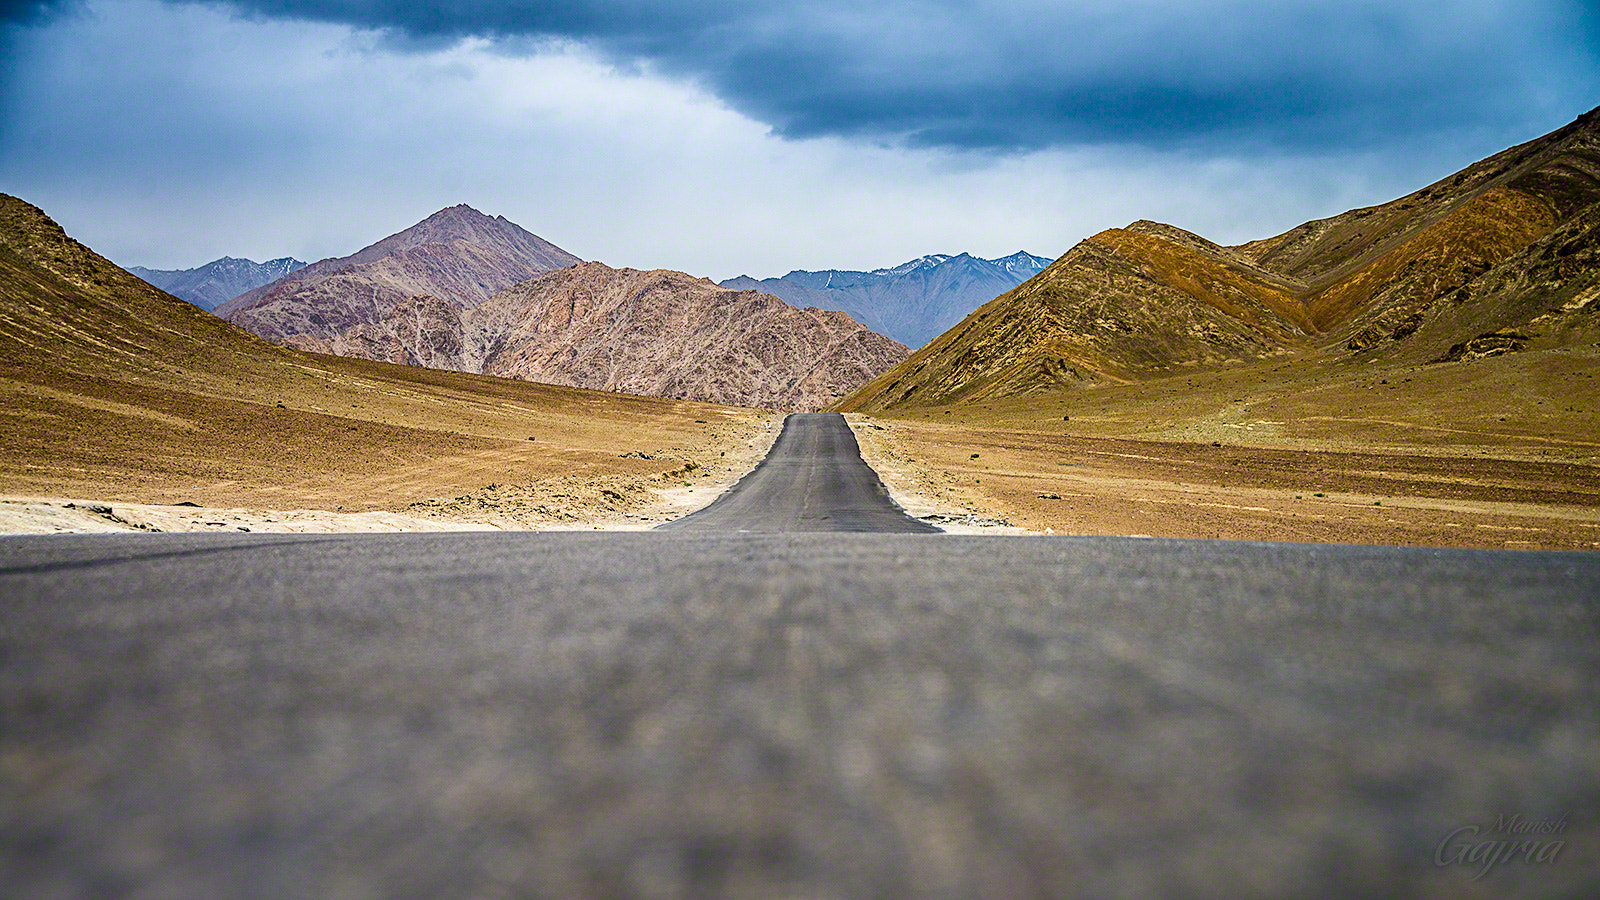 Photograph Limitless by Manish Gajria on 500px